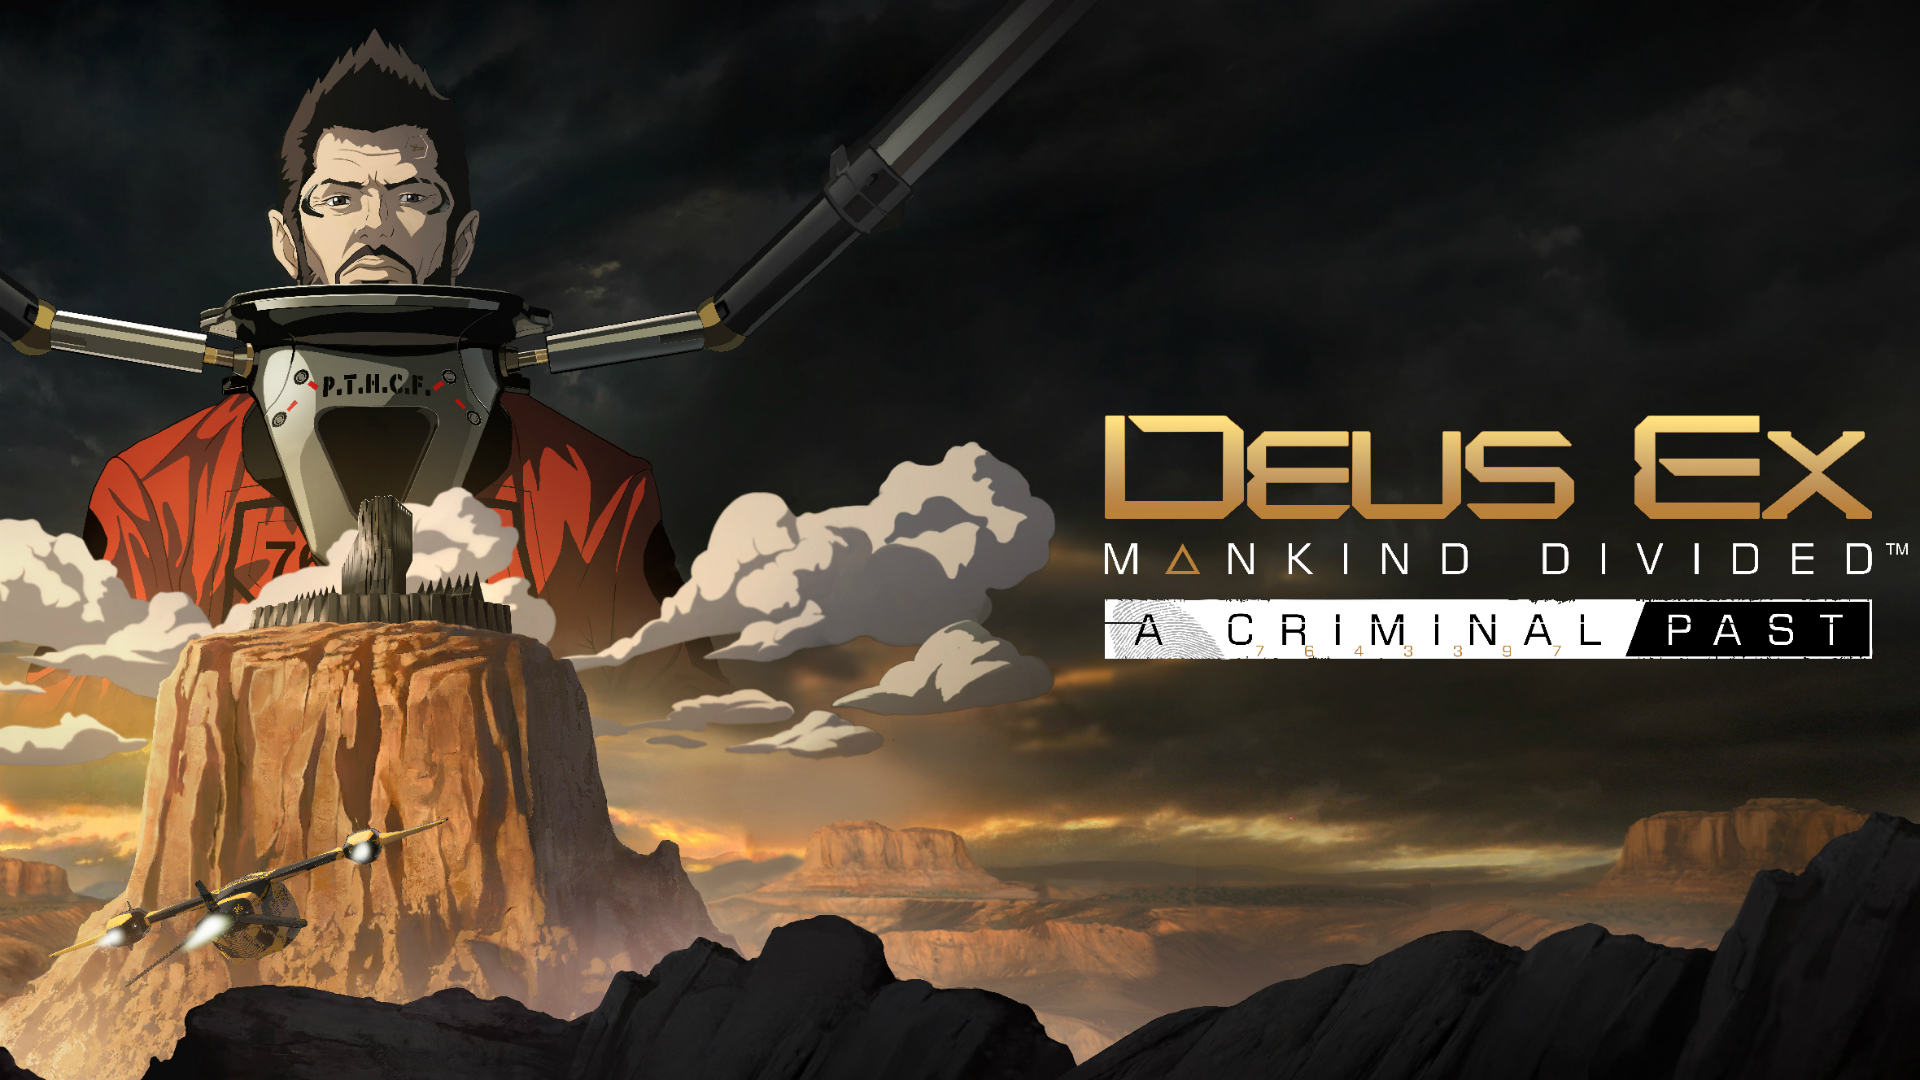 Deus-Ex-Mankind-Divided-A-Criminal-Past__art.jpg